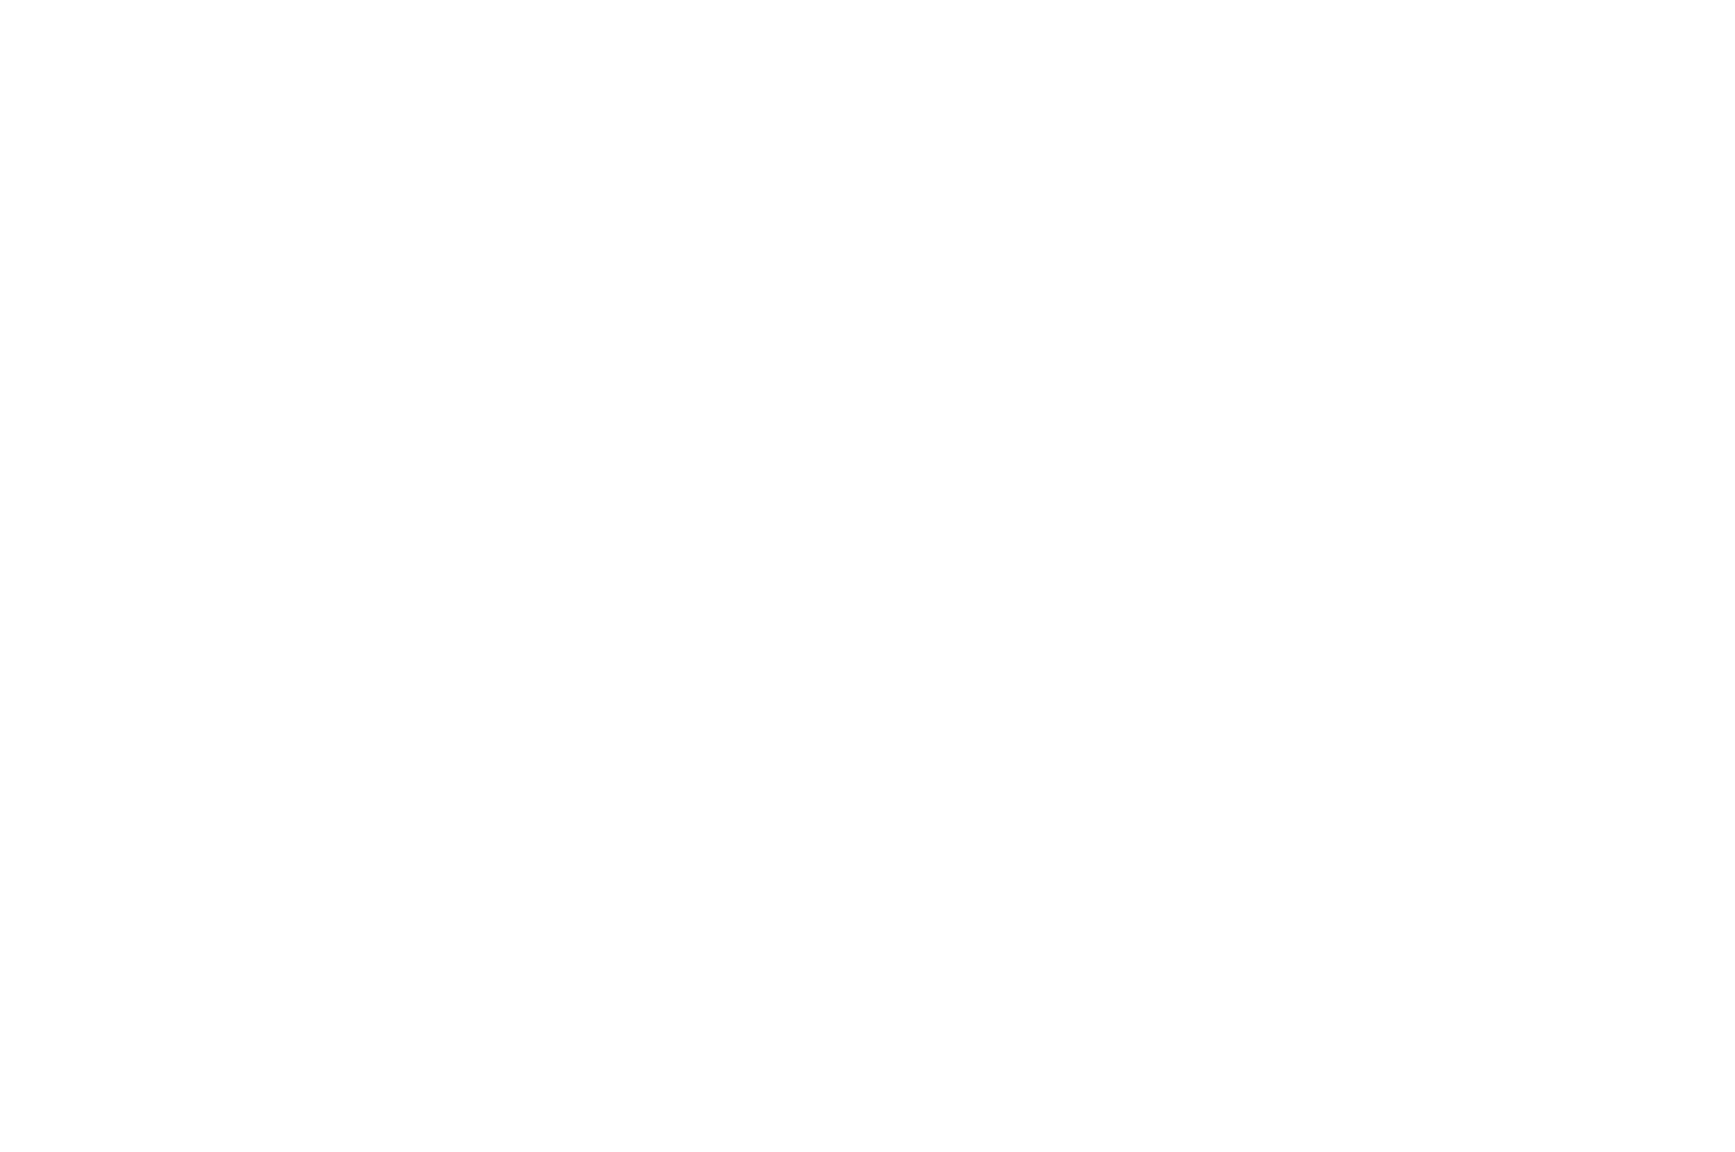 OFFICIAL SELECTION - Bare Bones International Film and Music Festival - 2018.png